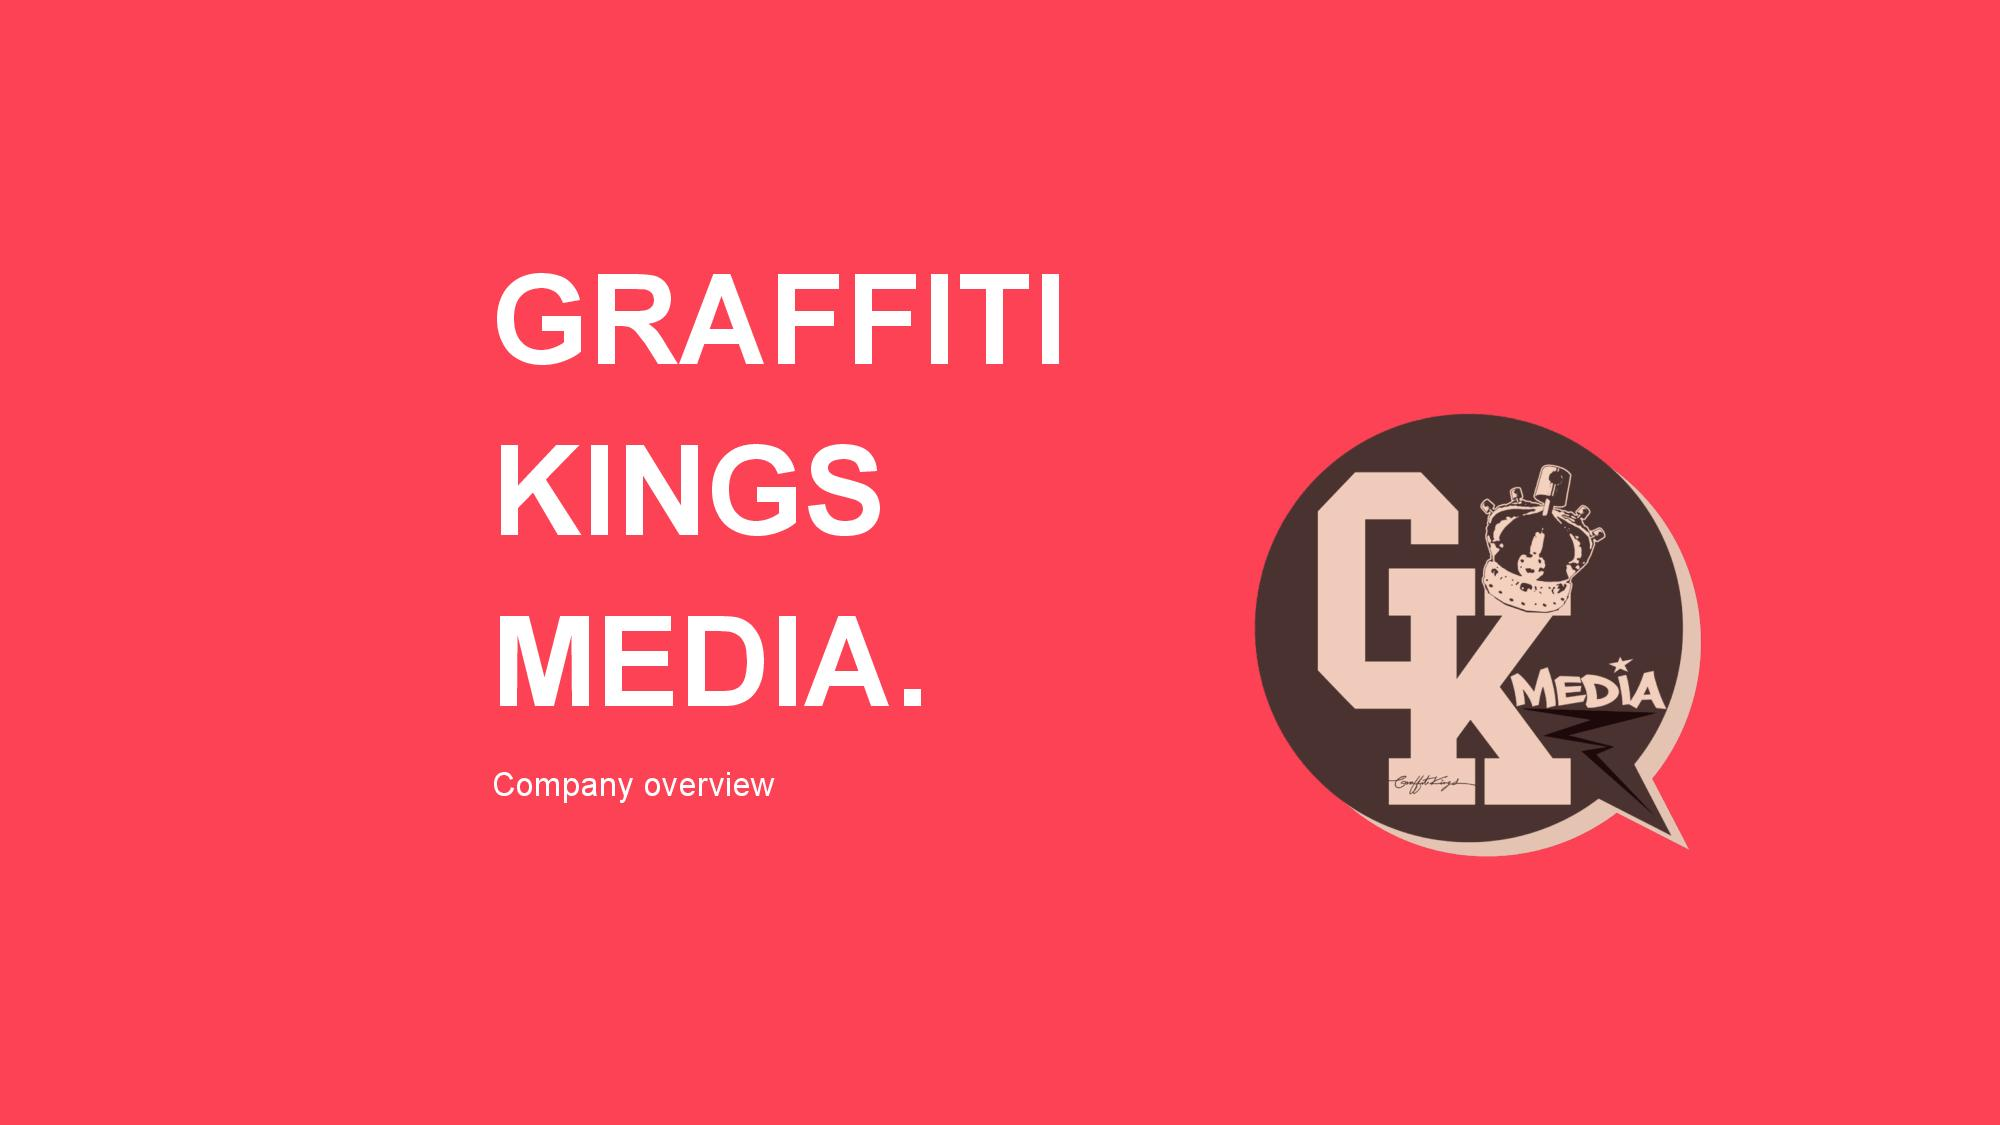 Graffiti Kings Media More Info-page-003